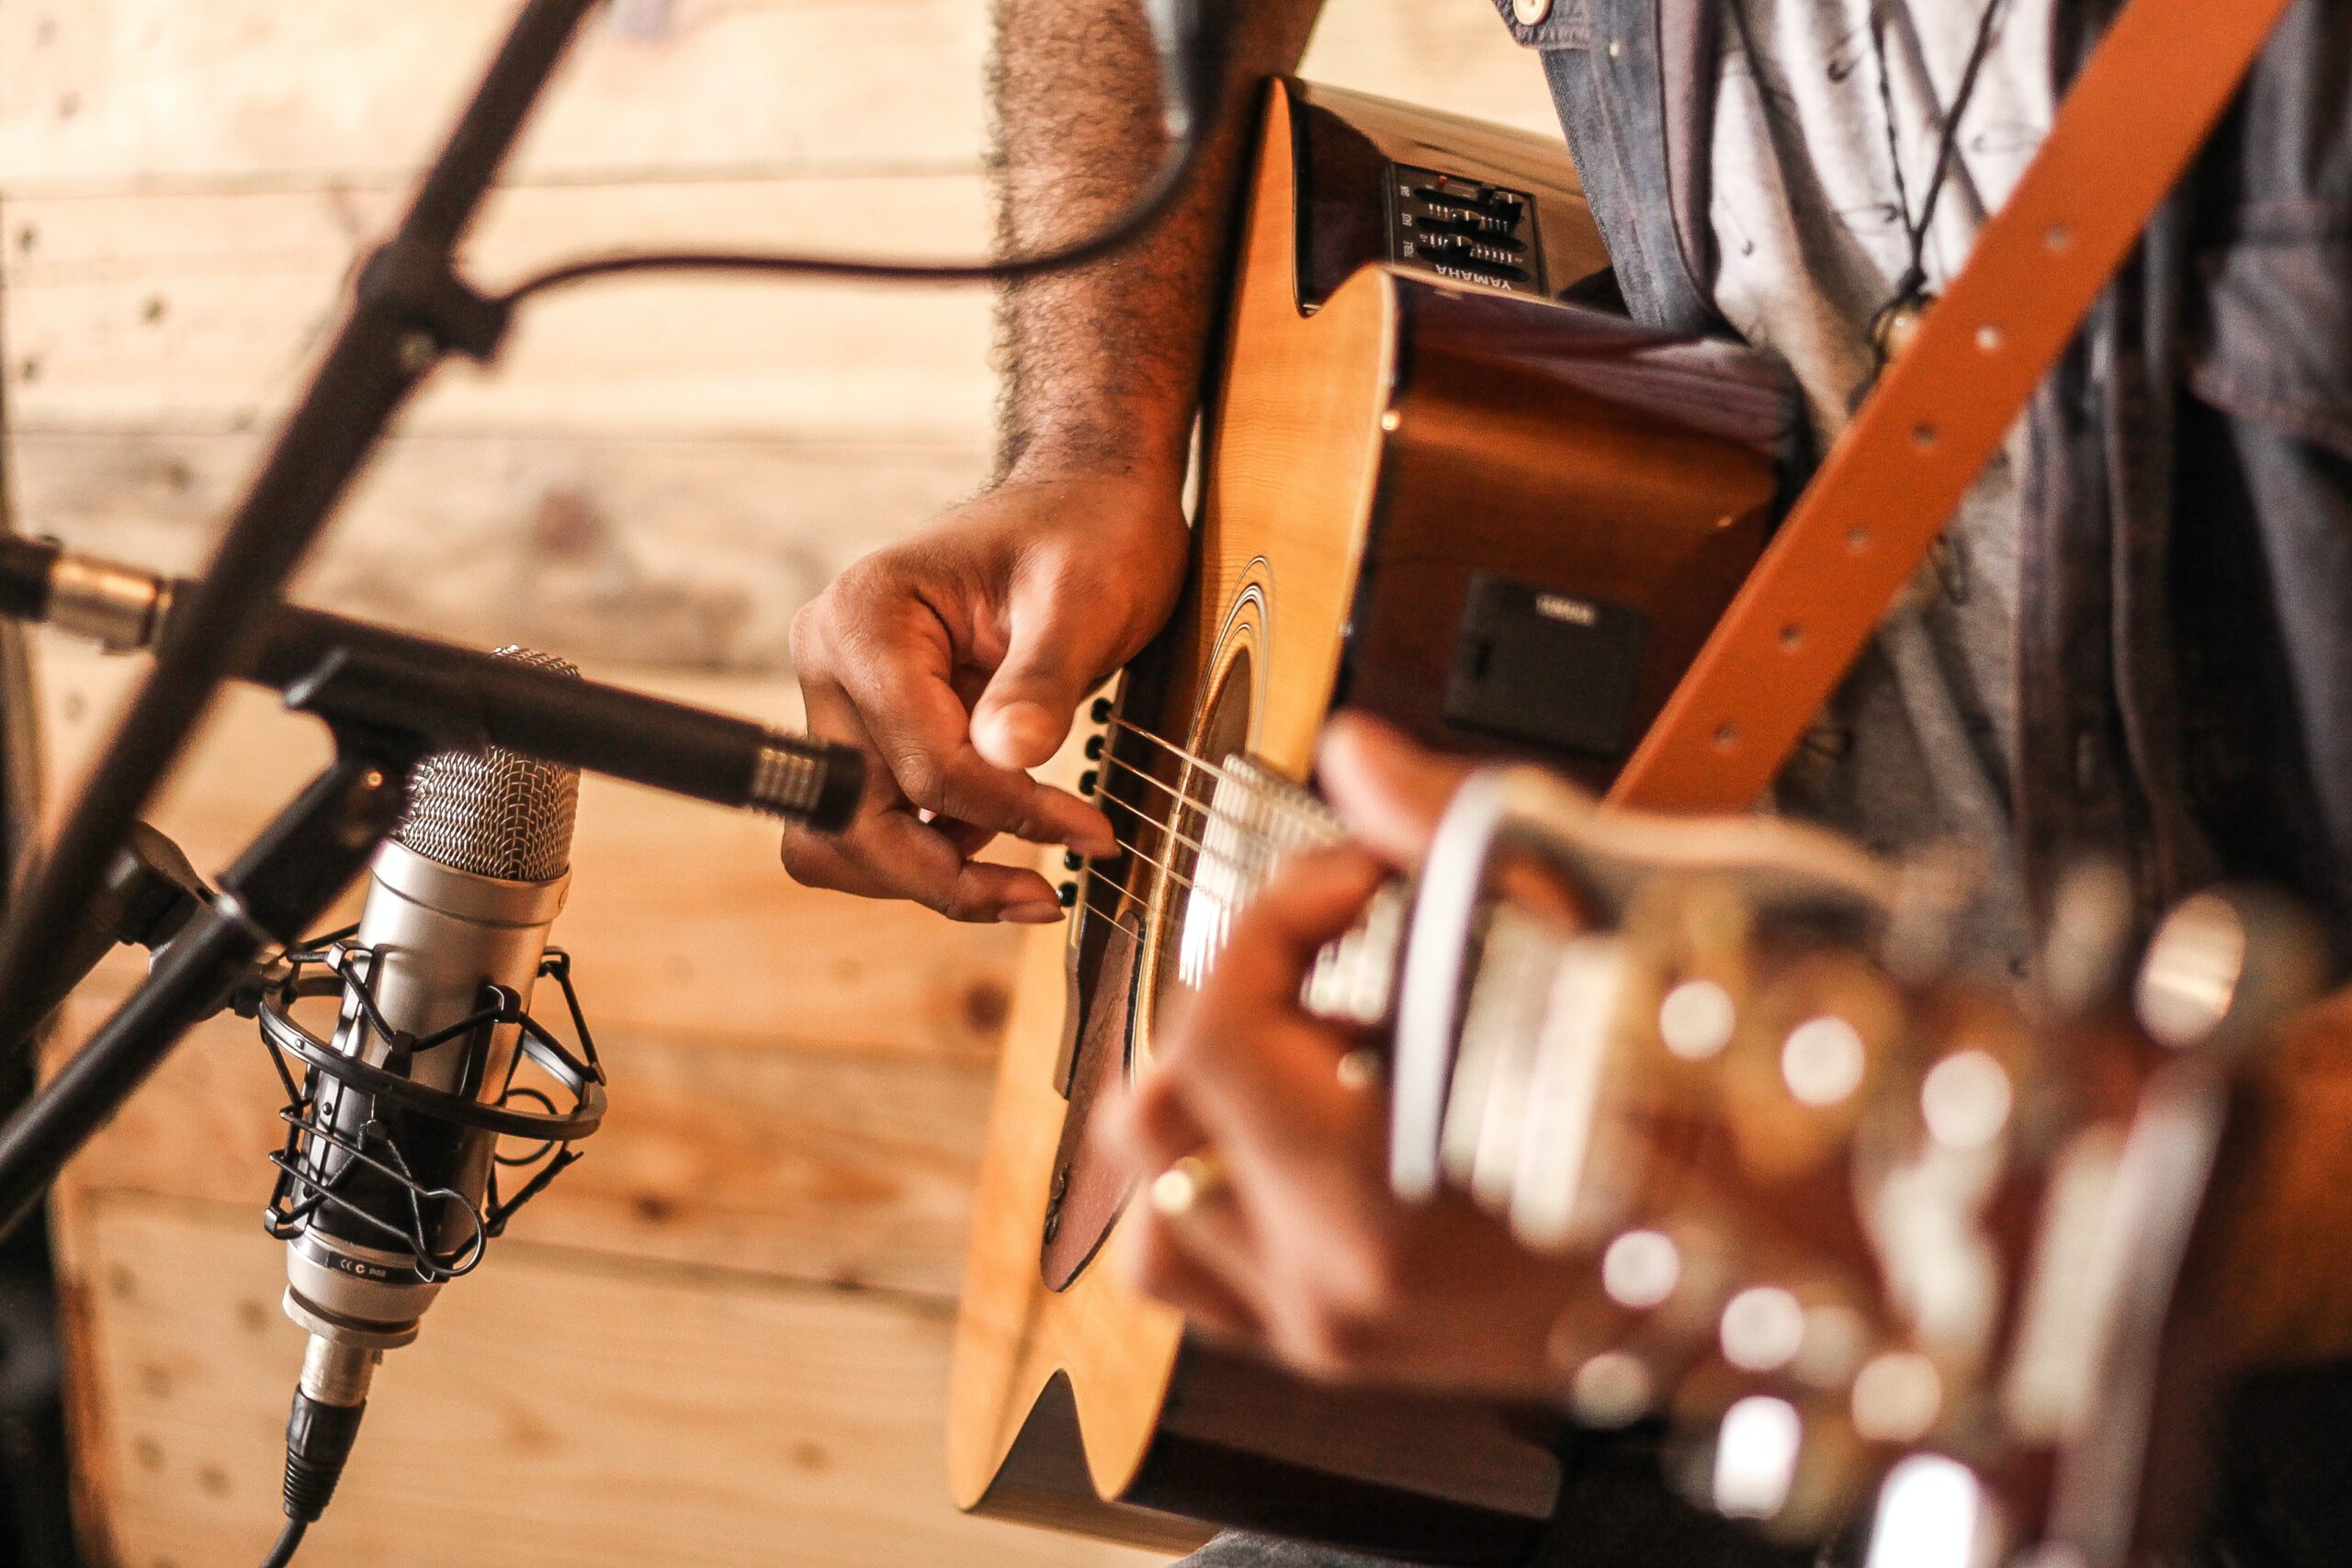 Person Playing Acoustic Guitar - How To Play Guitar For Beginners: A Step-by-Step Guide